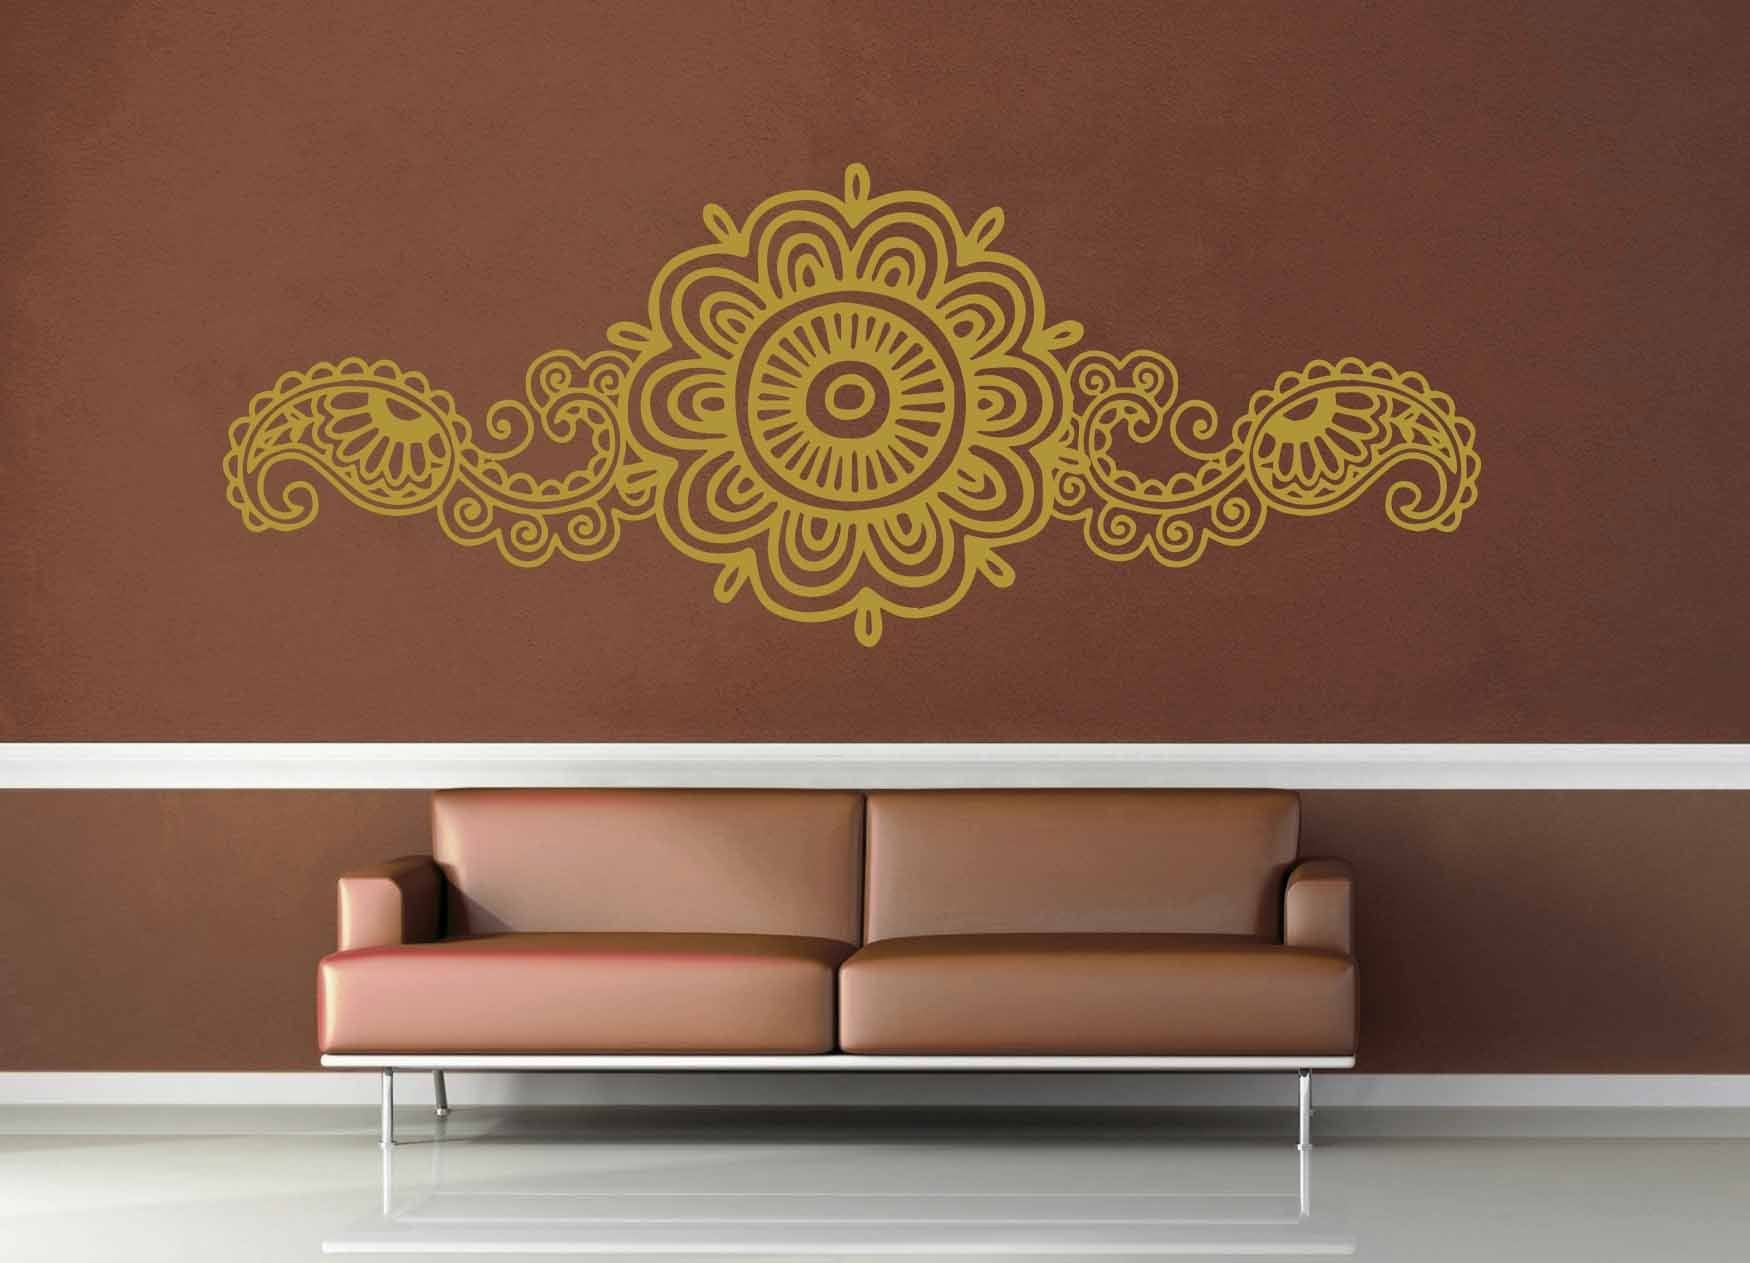 Henna Flowers - Wall Decal - No 2